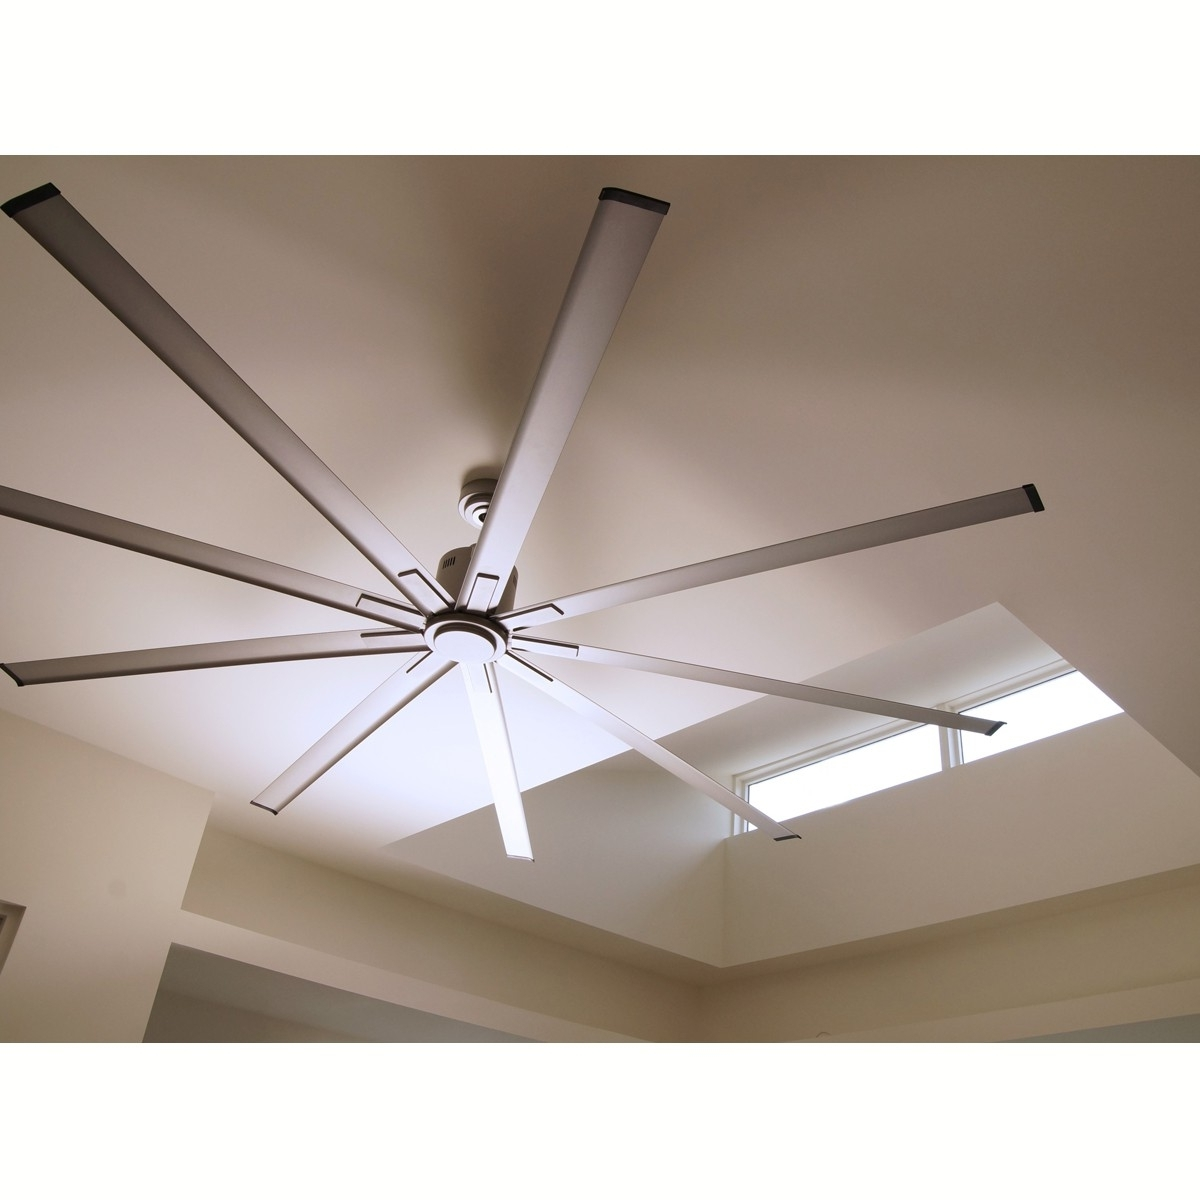 20 72 Ceiling Fan, 72 In 8 Blade Brushed Nickel Led Ceiling Fan With Within 2018 72 Predator Bronze Outdoor Ceiling Fans With Light Kit (View 15 of 20)